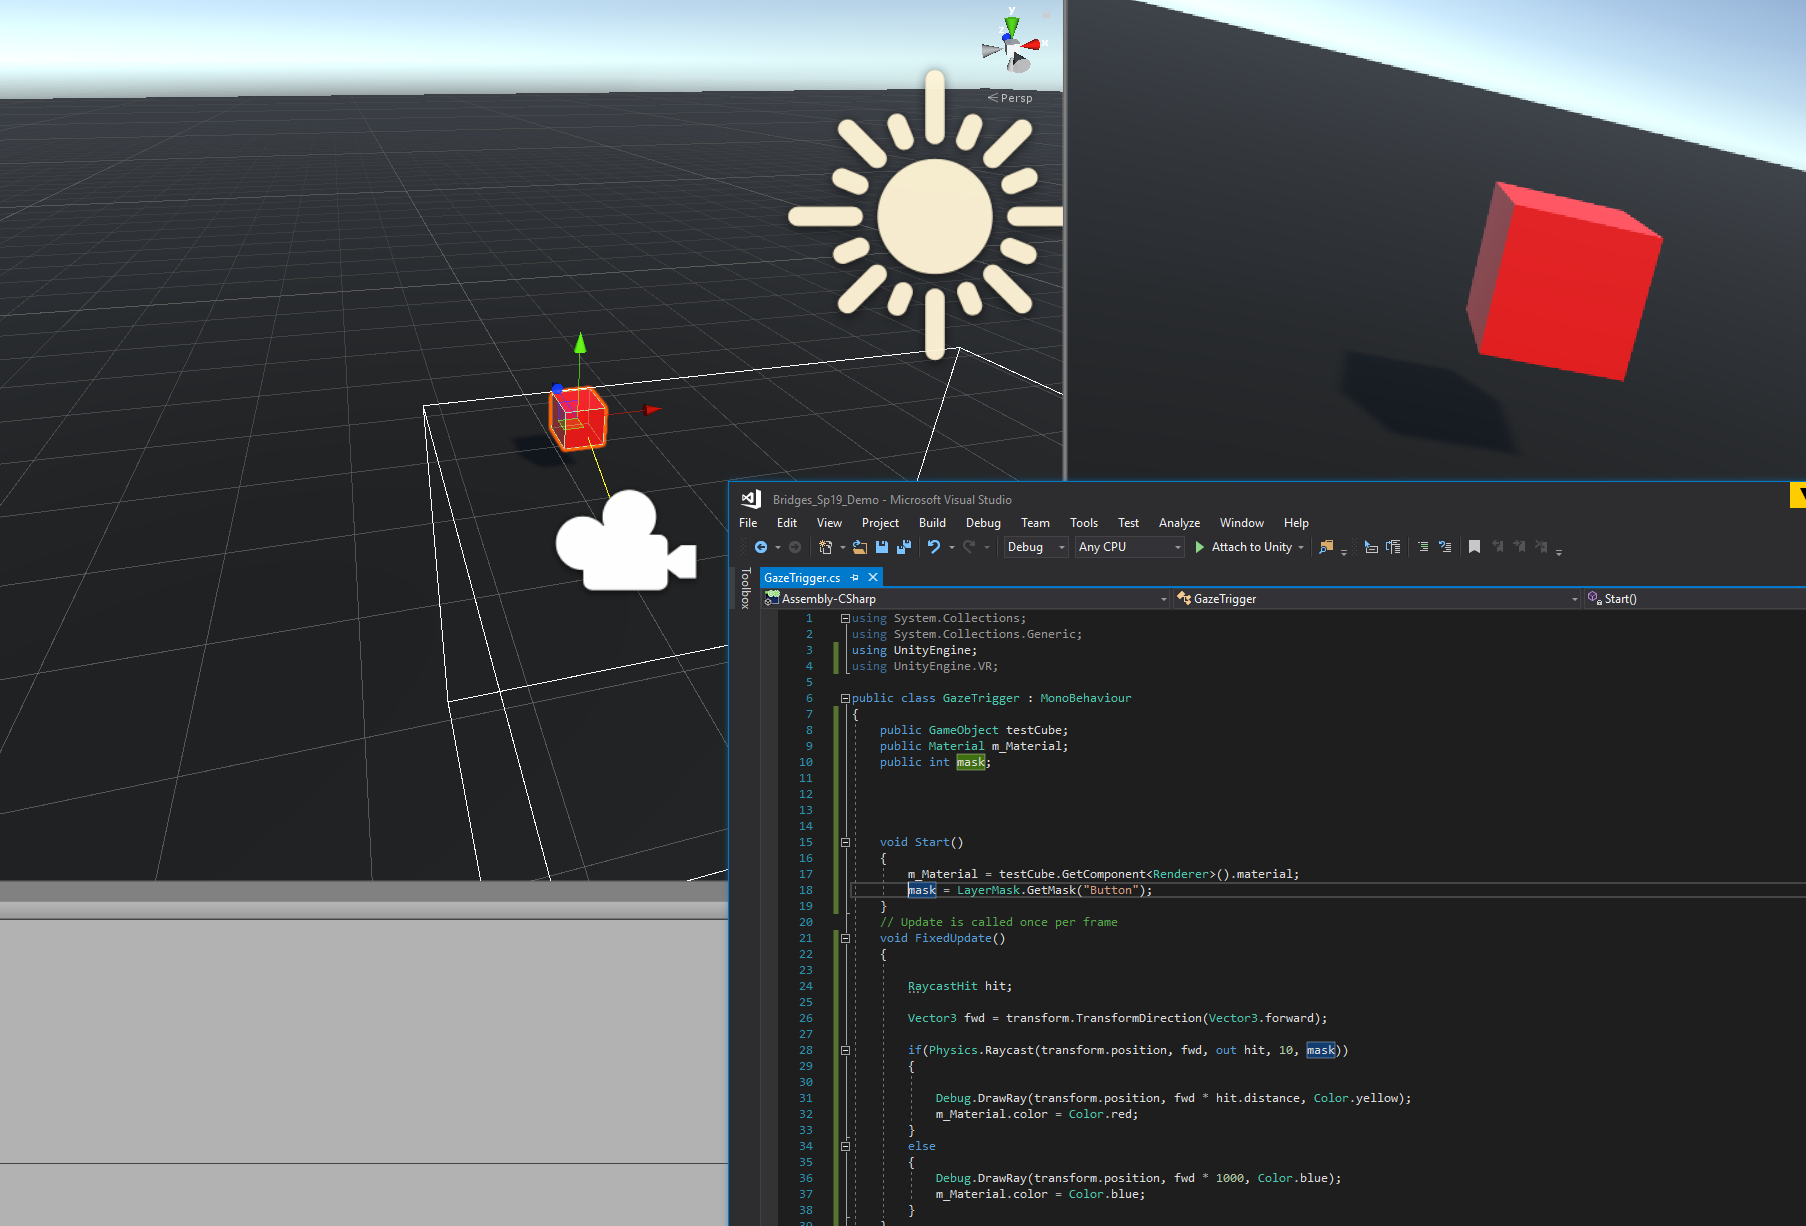 Successful raycast test, with fixed script shown.